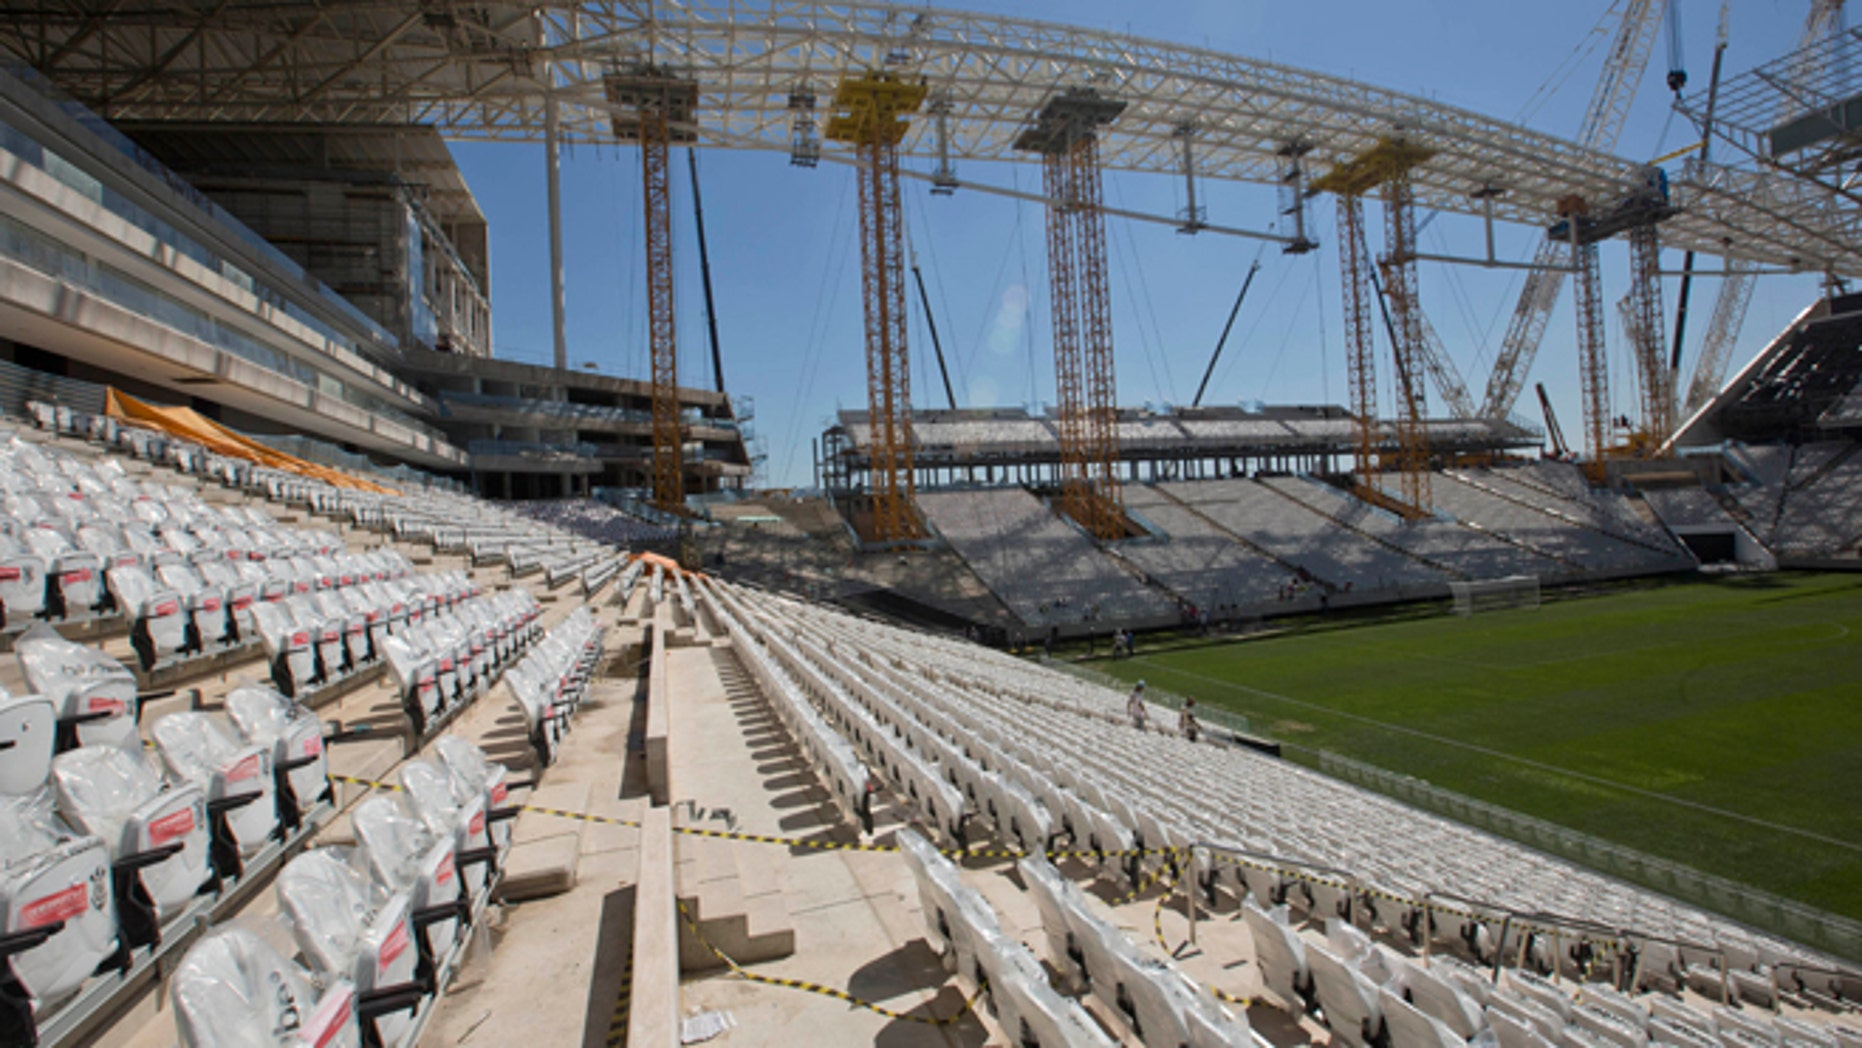 Men work at the Itaquerao, the stadium that will host the World Cup opener in less than three months in Sao Paulo, Brazil, Saturday, March 15, 2014. The Itaquerao was one of the six stadiums that were supposed to be finished by the end of 2013, but a crane collapse that killed two workers in November caused significant delays to the venue where Brazil will play Croatia on June 12. The stadium is not expected to be ready before mid-April. (AP Photo/Andre Penner)